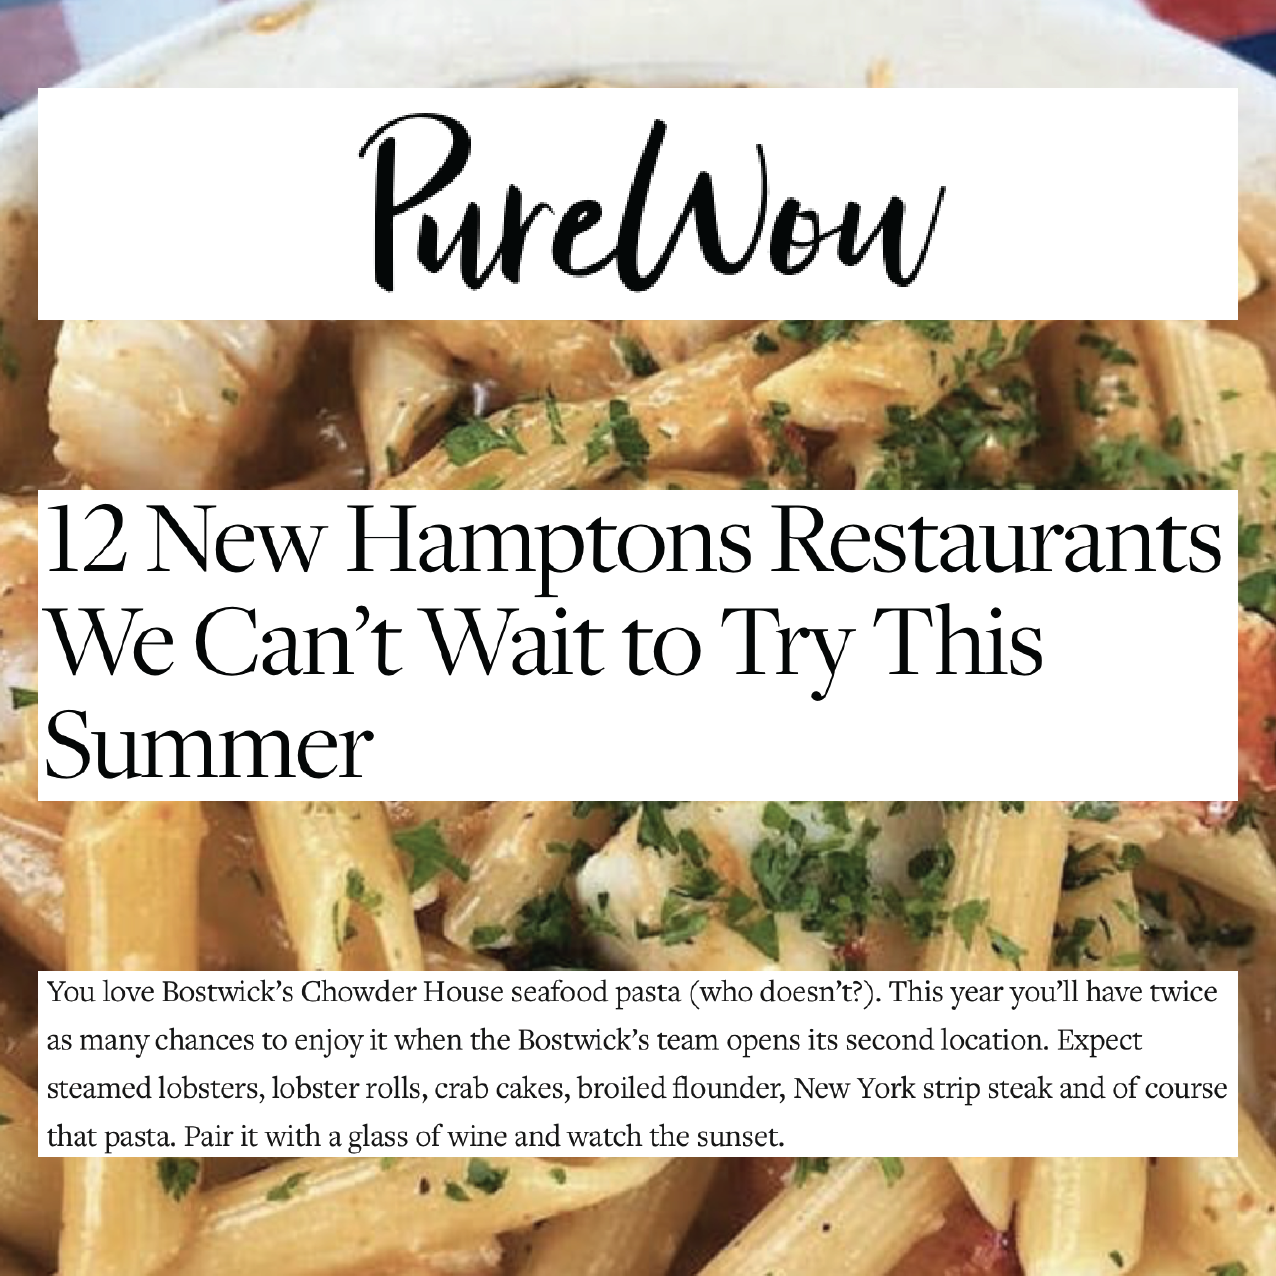 Purewow-01.png